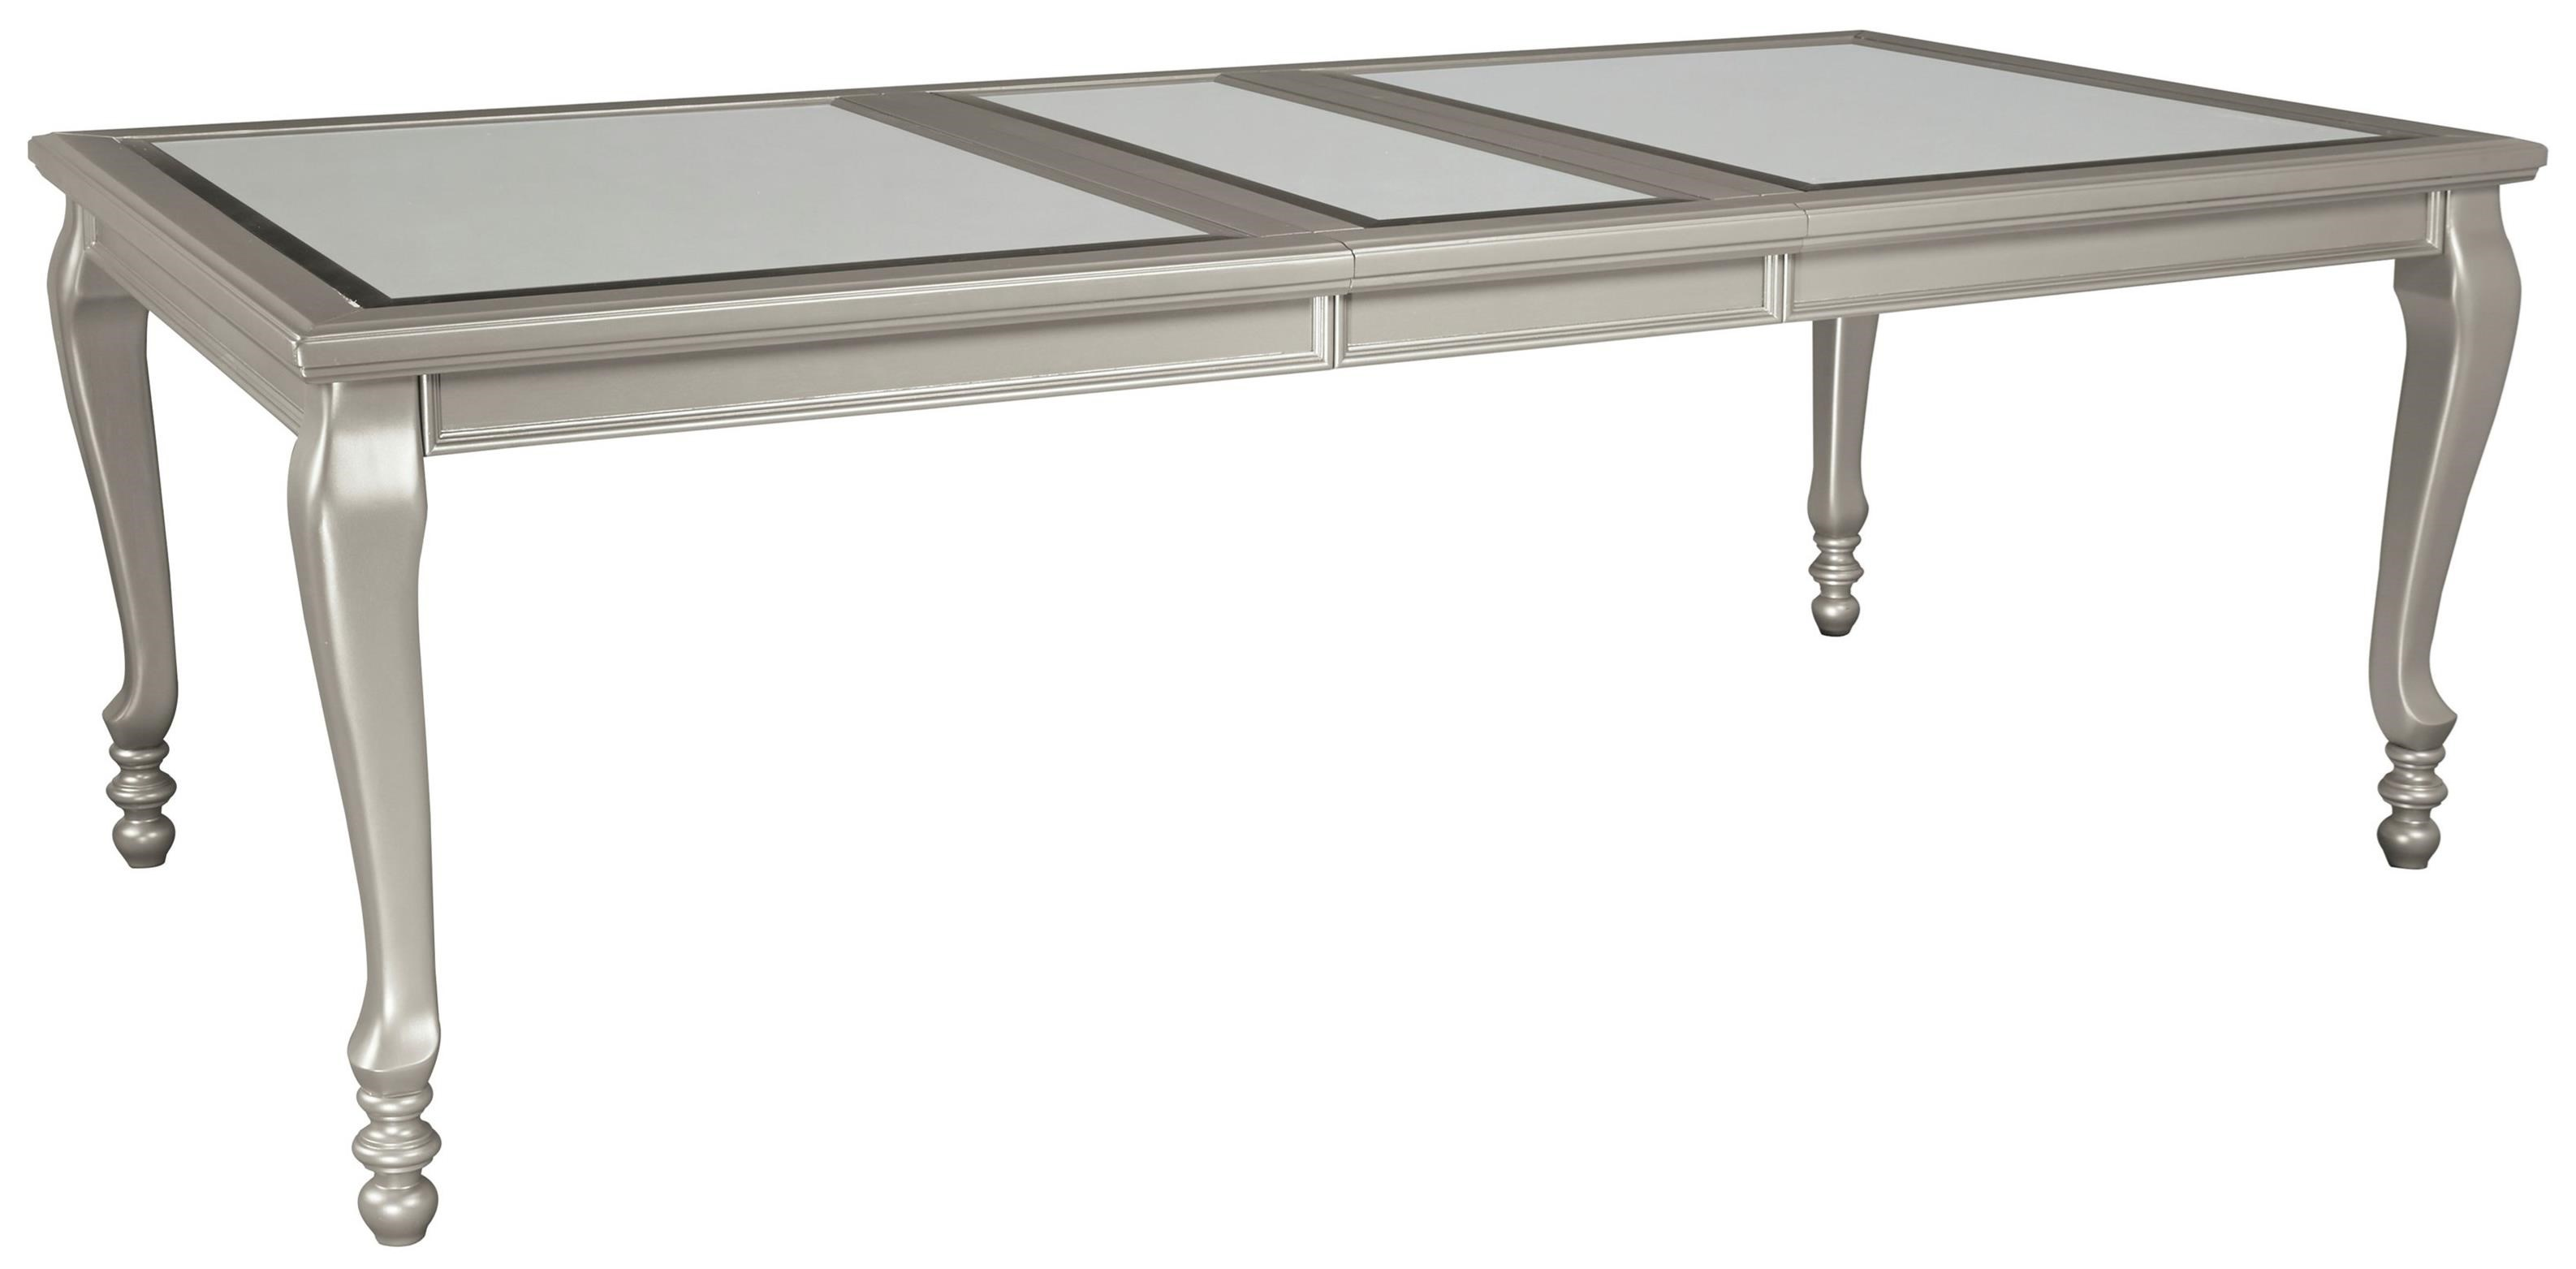 Coralayne Rectangular Dining Room Extension Table by Ashley (Signature Design) at Johnny Janosik